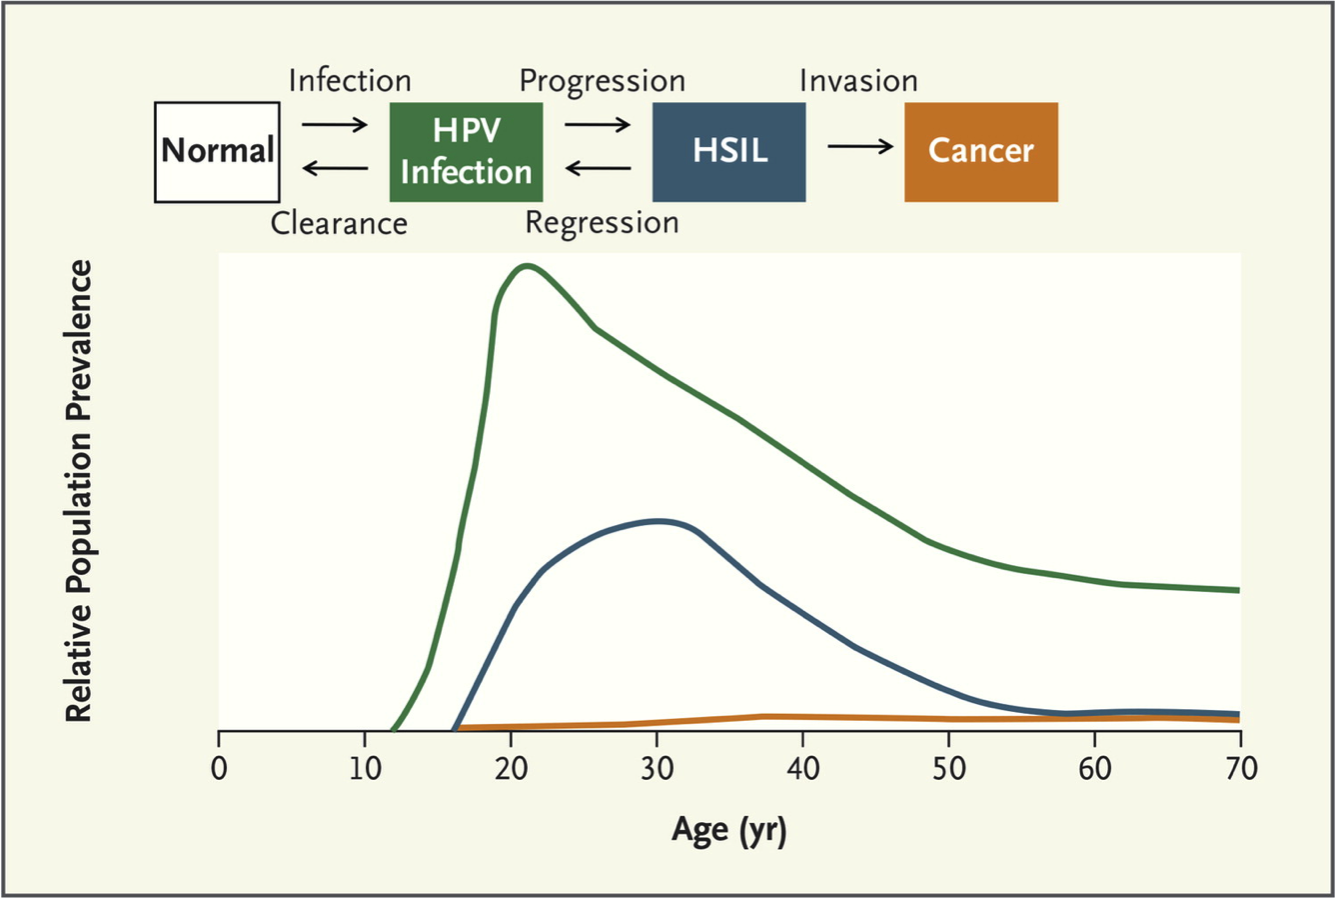 human papillomavirus infection statistics